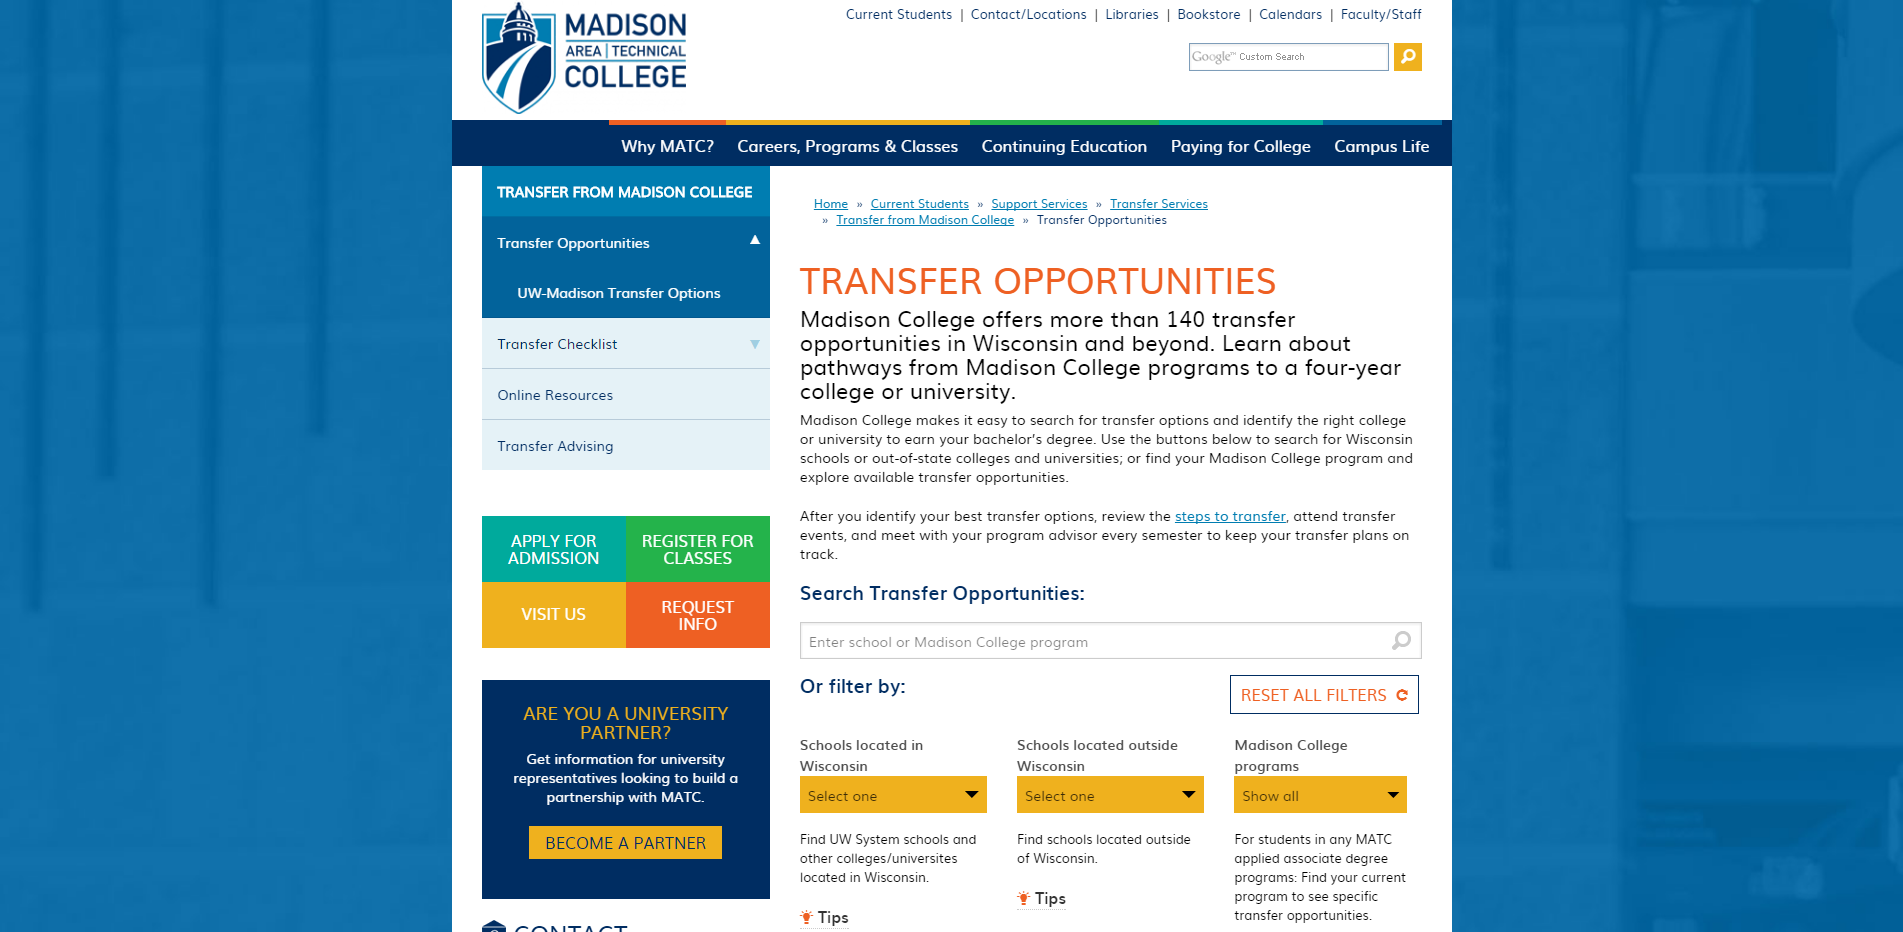 Madison College Transfer Opportunities